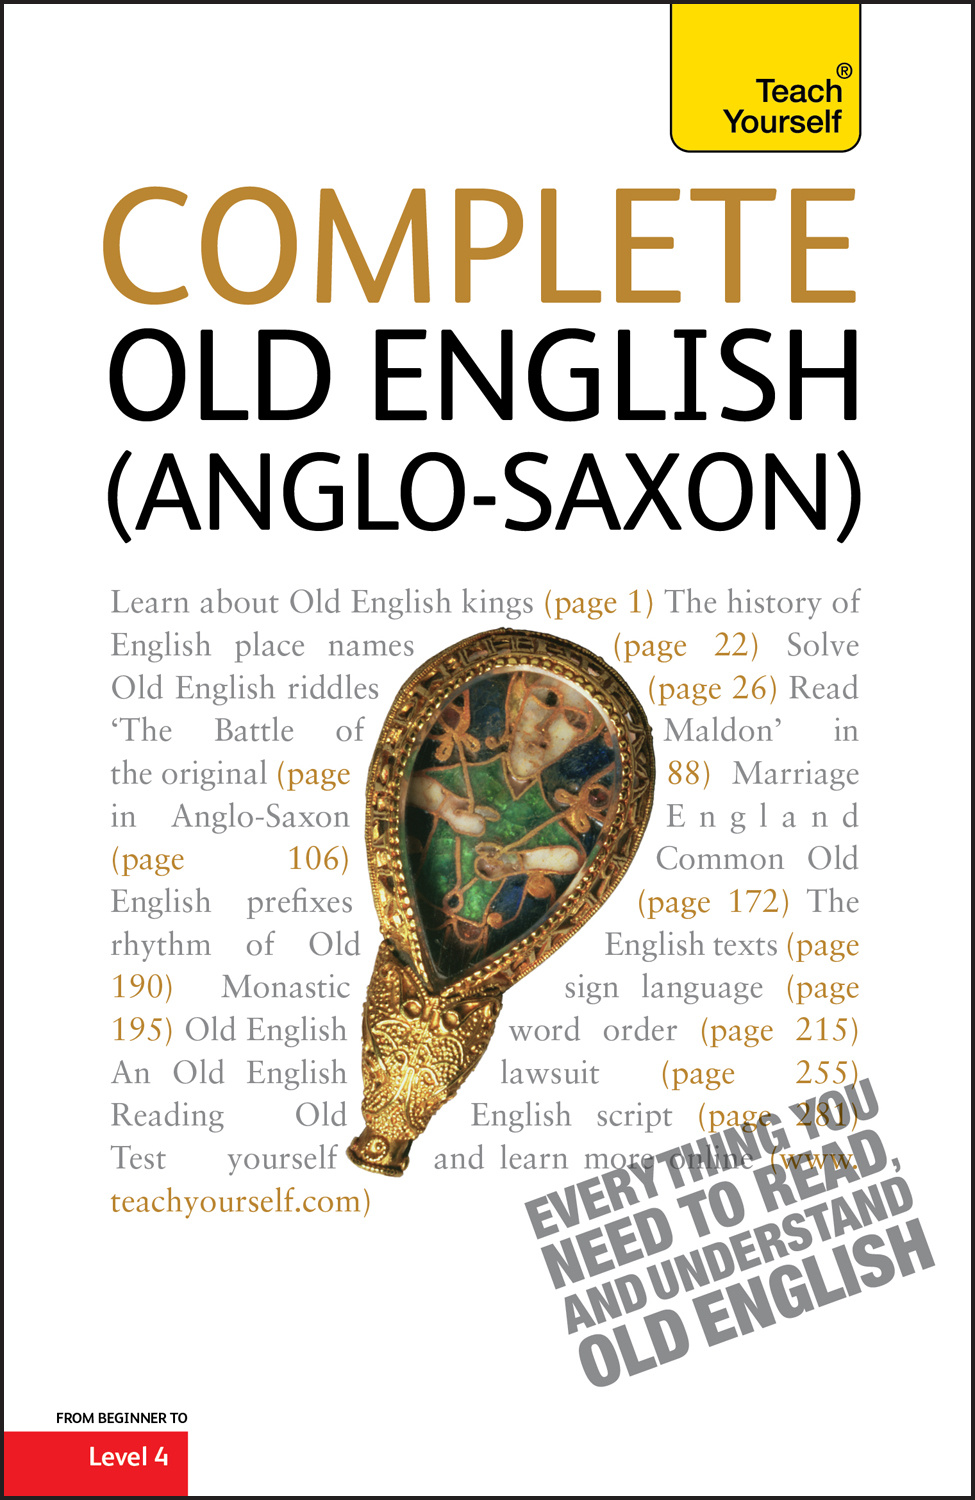 Teach Yourself Complete Old English (Anglo-Saxon)